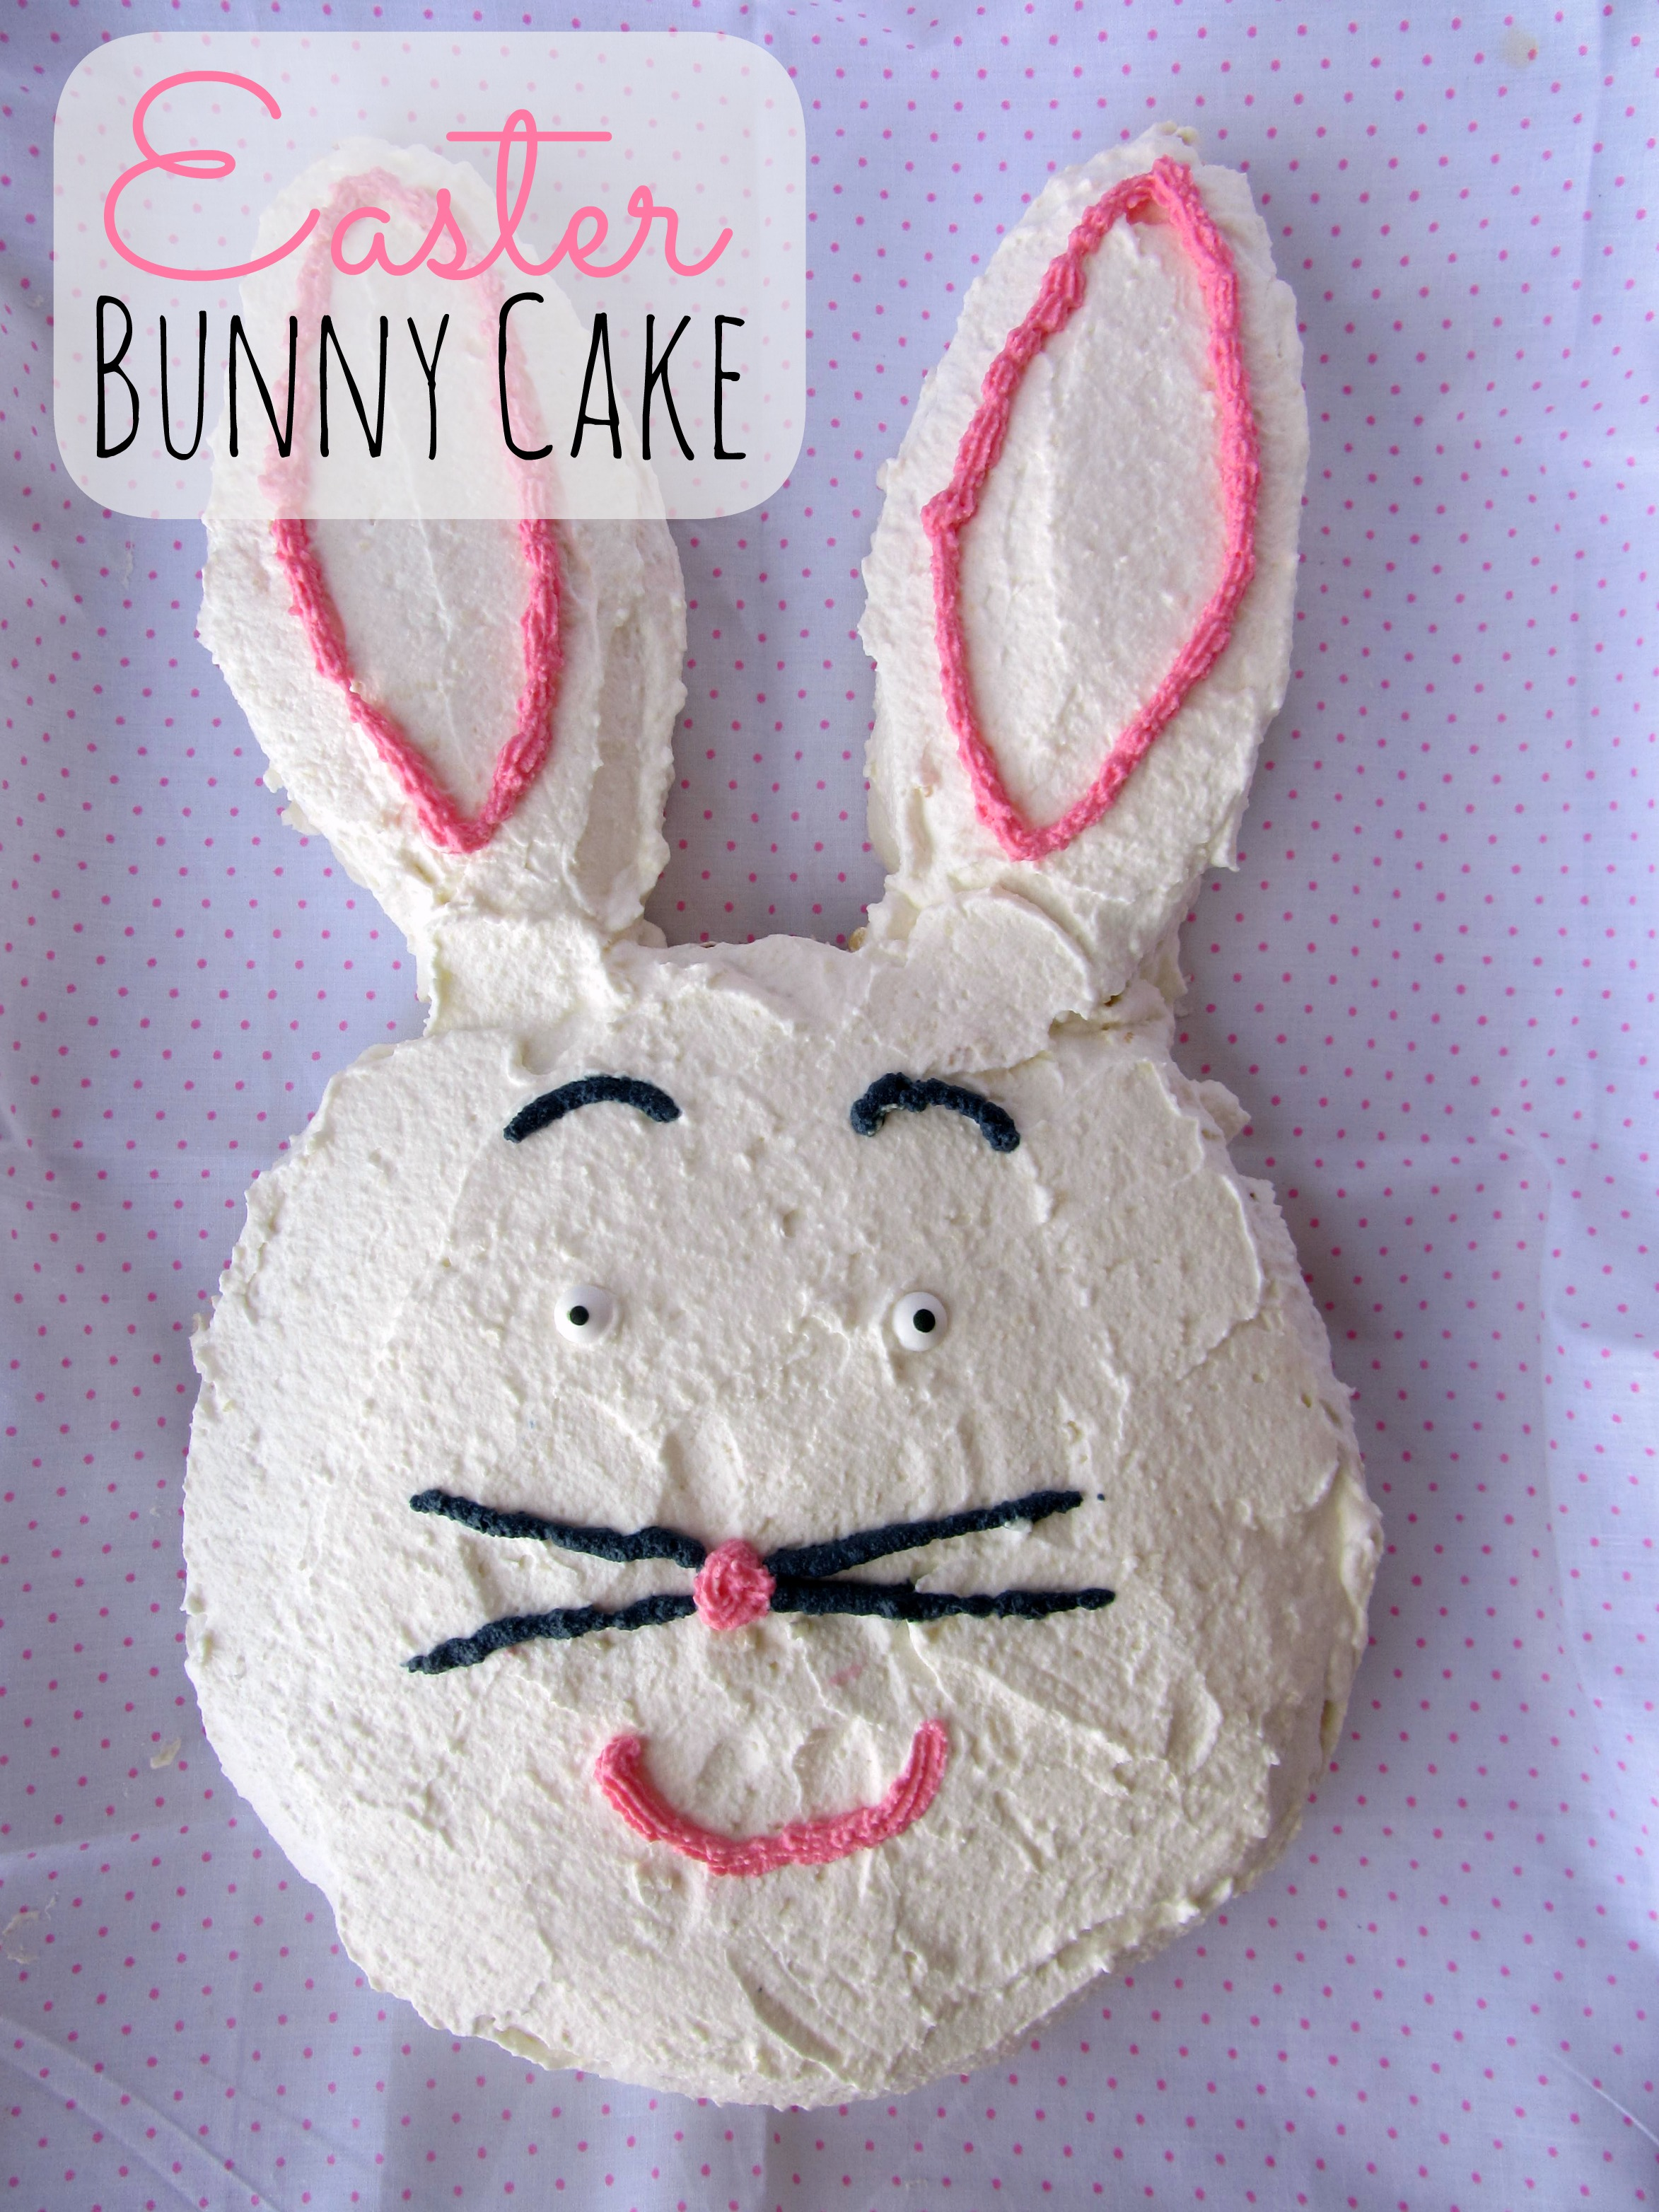 cake easy berry butter cake easy bunny cake use 2 8 inch round cakes ...